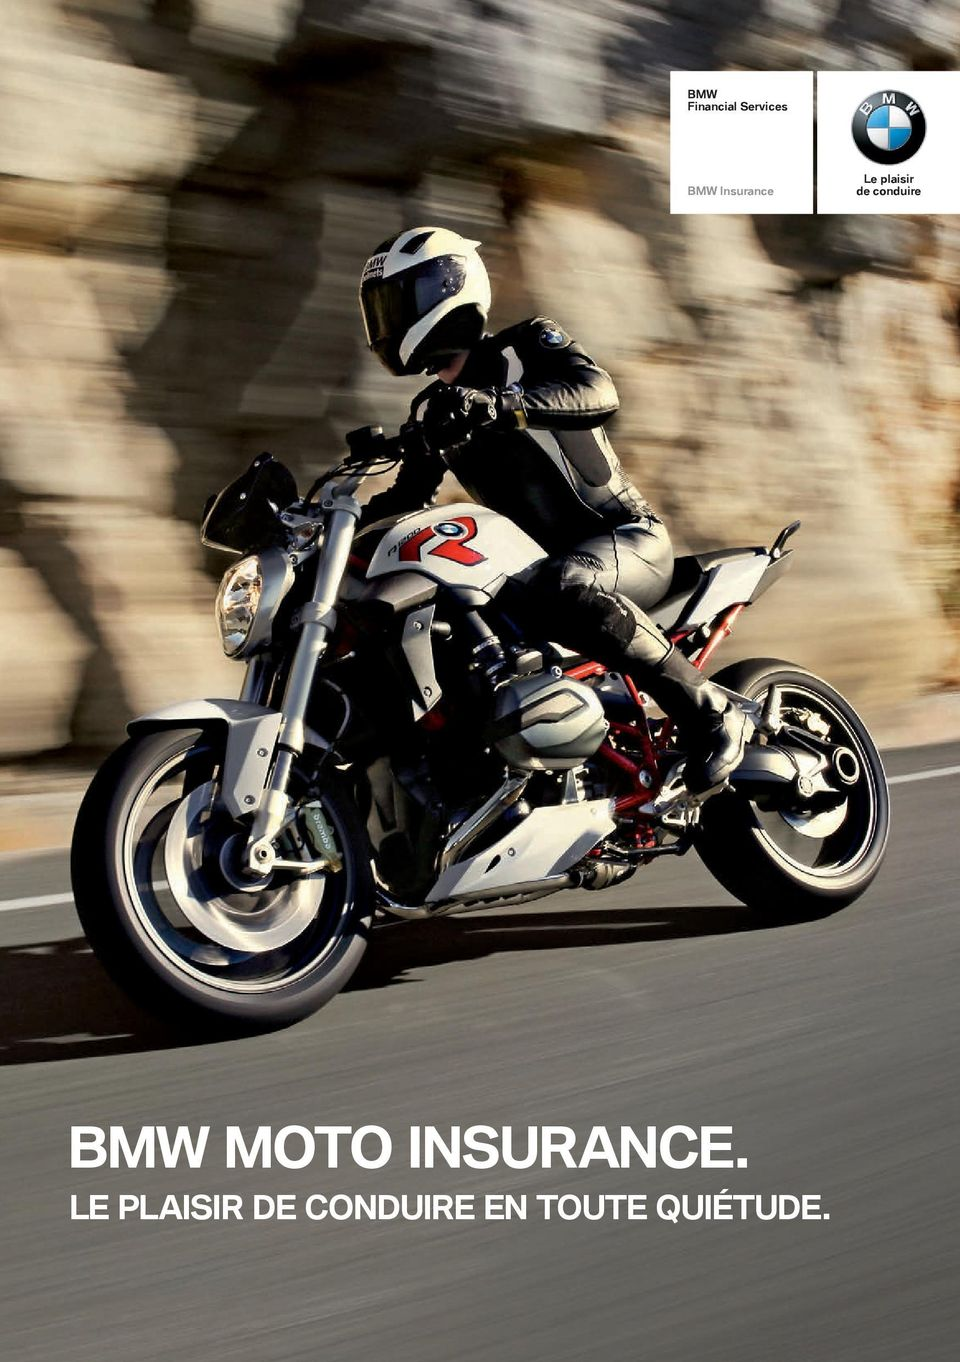 conduire BMW MOTO INSURANCE.